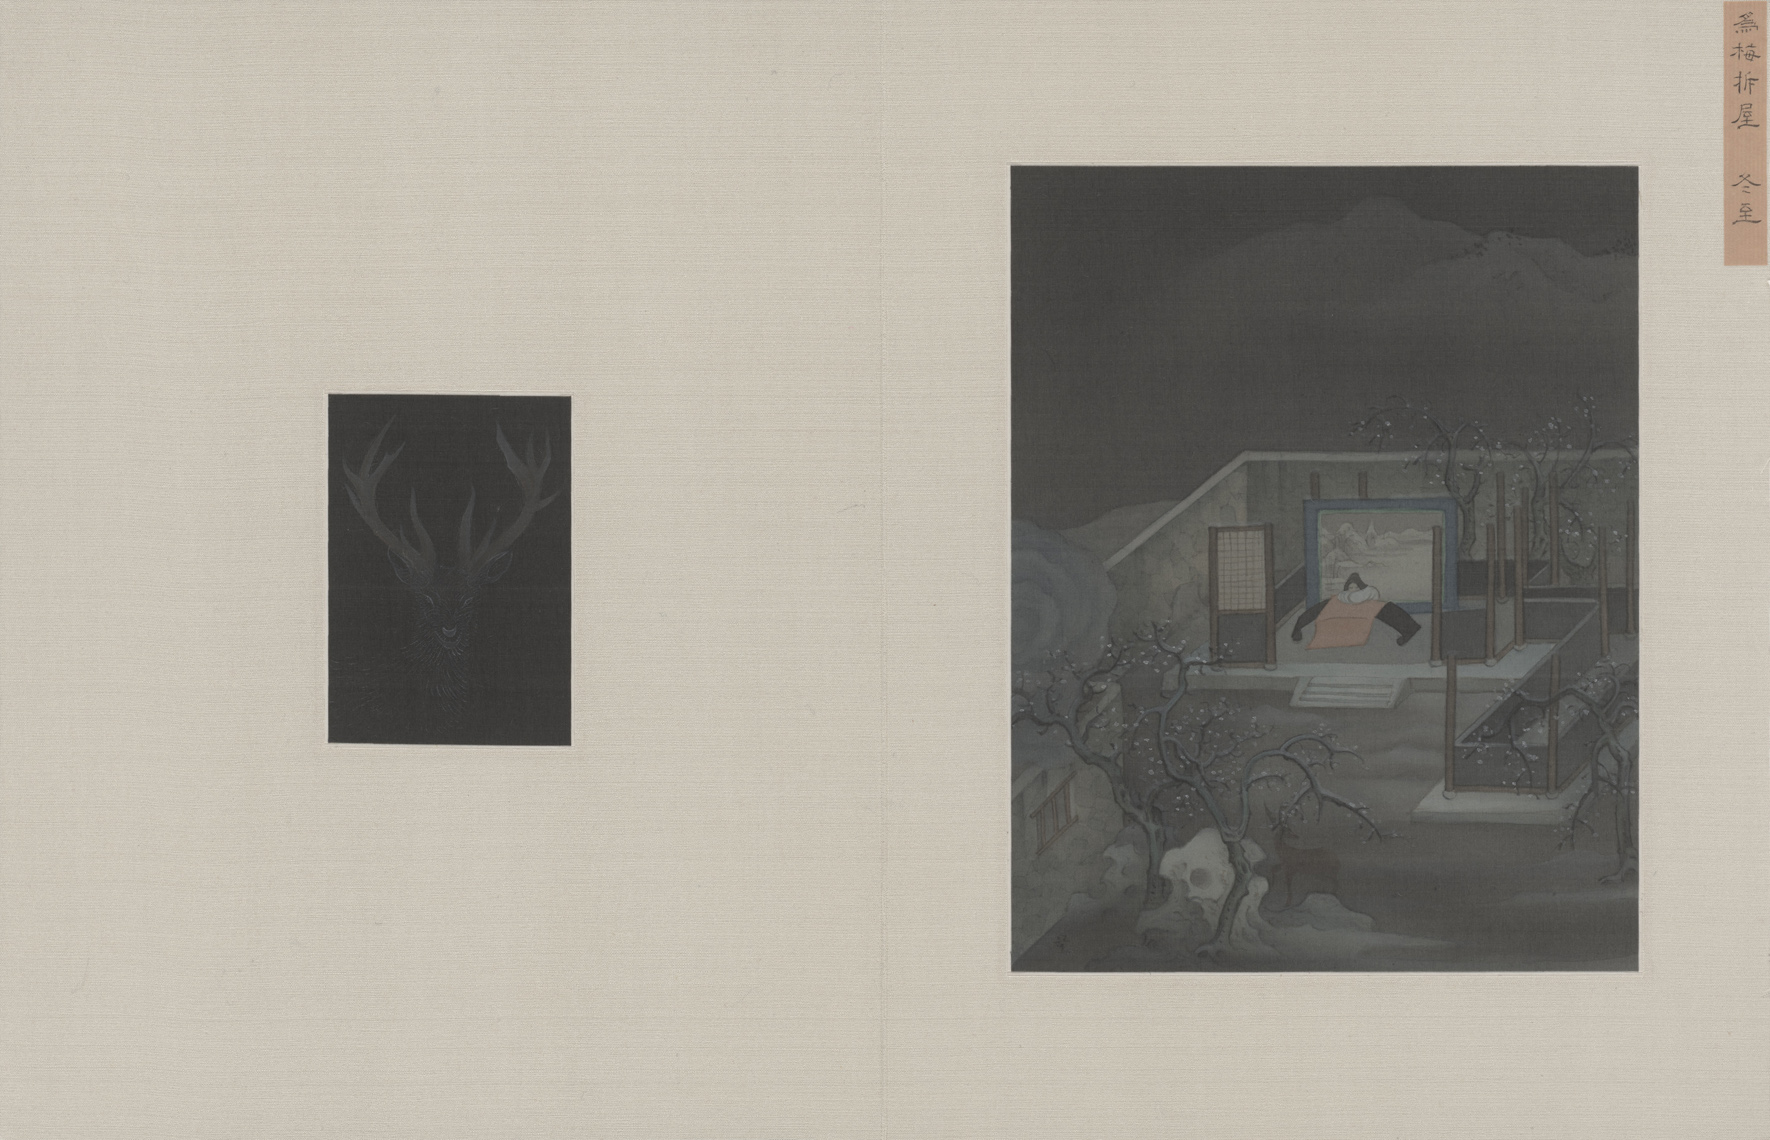 Hao Liang 郝量, Tear Down the House for Plum Trees 为梅拆屋, 2013, Ink and color on silk 绢本重彩, 6.5 x 9.5 cm (left 左) and 17 x 22 cm (right 右)